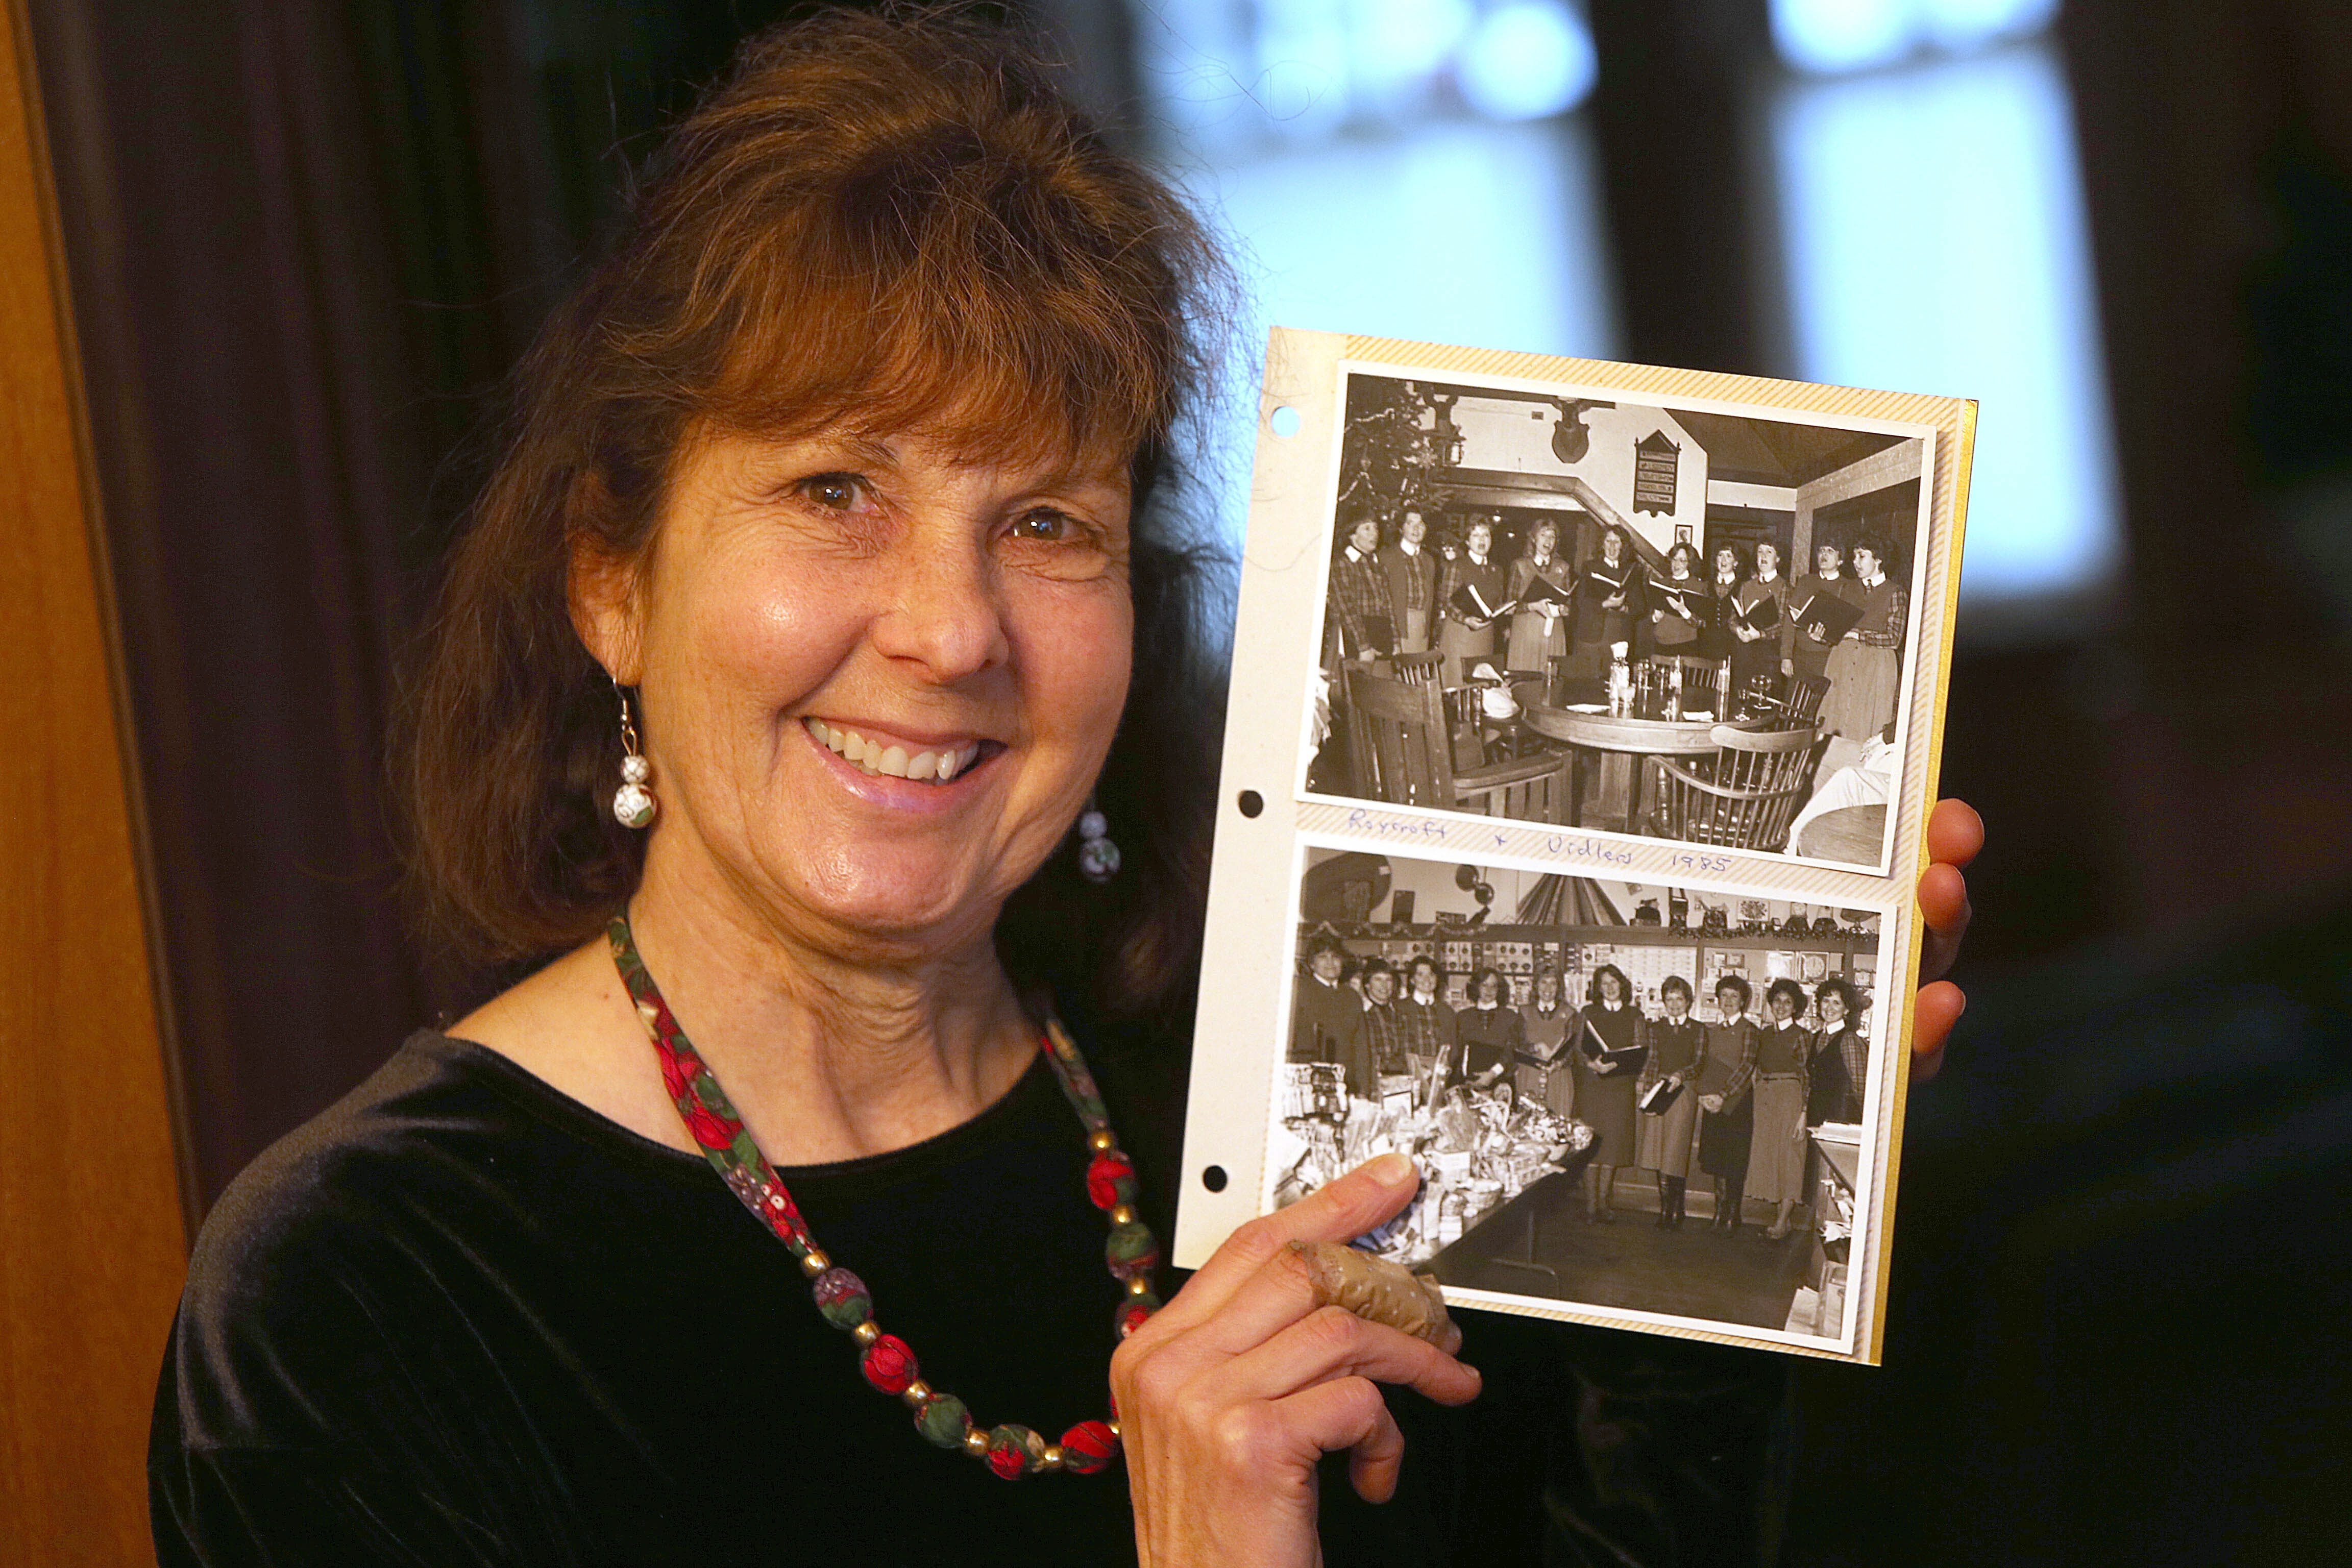 Ellen Moomaw holds up some black and white photos of the Village Singers from her collection on Thursday.